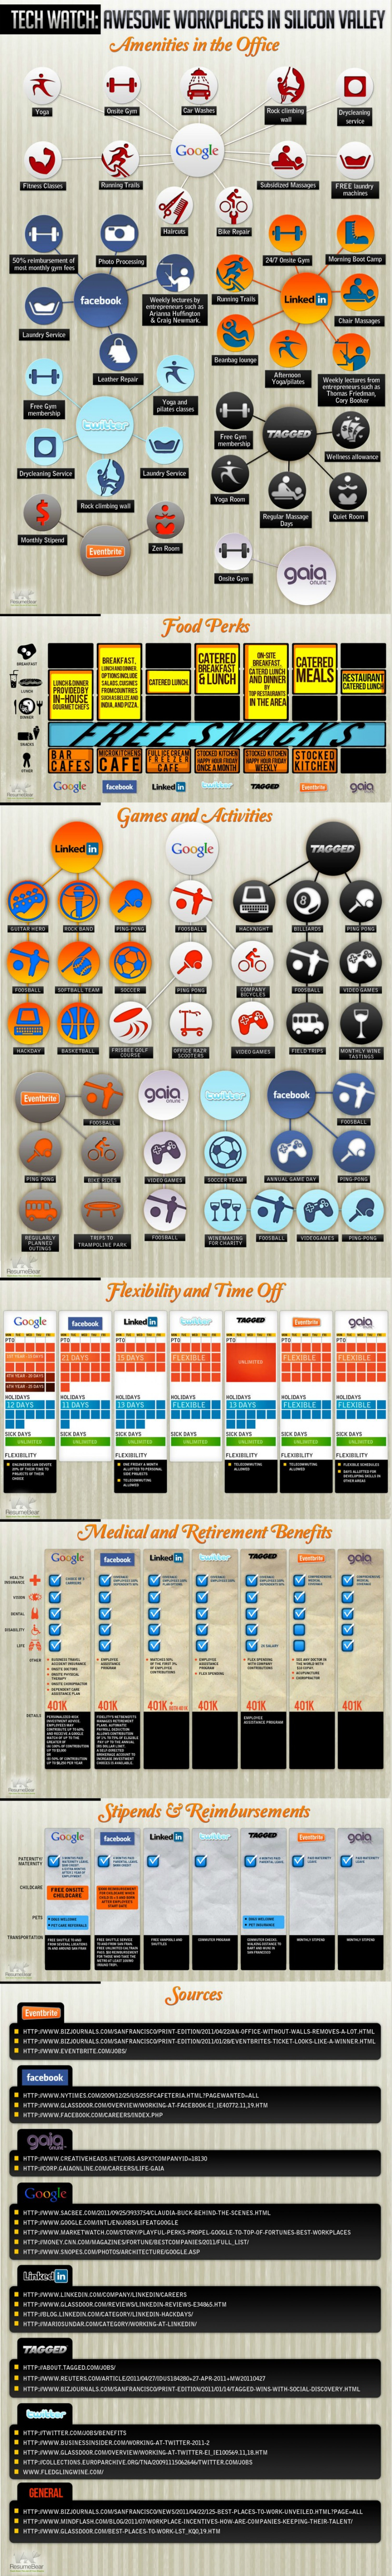 The Perks of Working at Top Web Companies Infographic